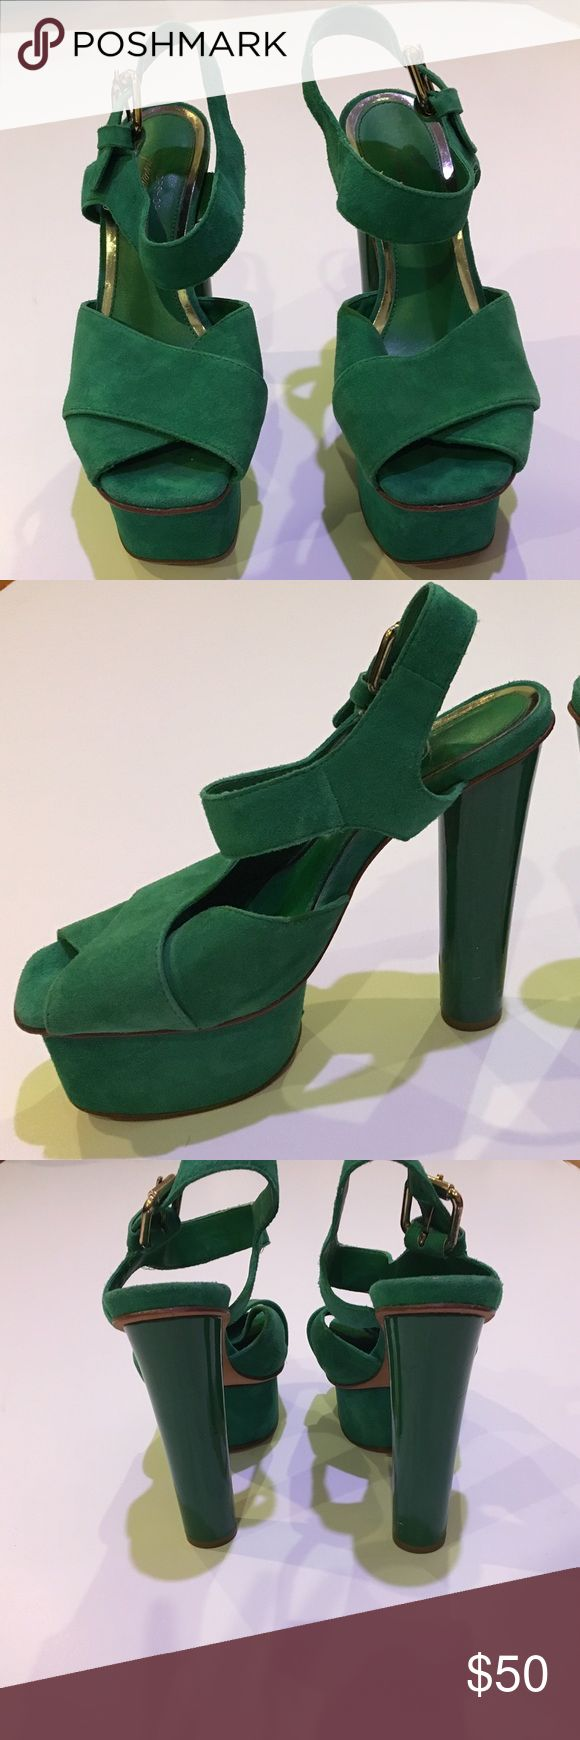 Topshop premium green suede heels Pre loved but still in good condition. Does show some signs of wear, which can probably come off once cleaned. Size 38 Topshop Shoes Heels